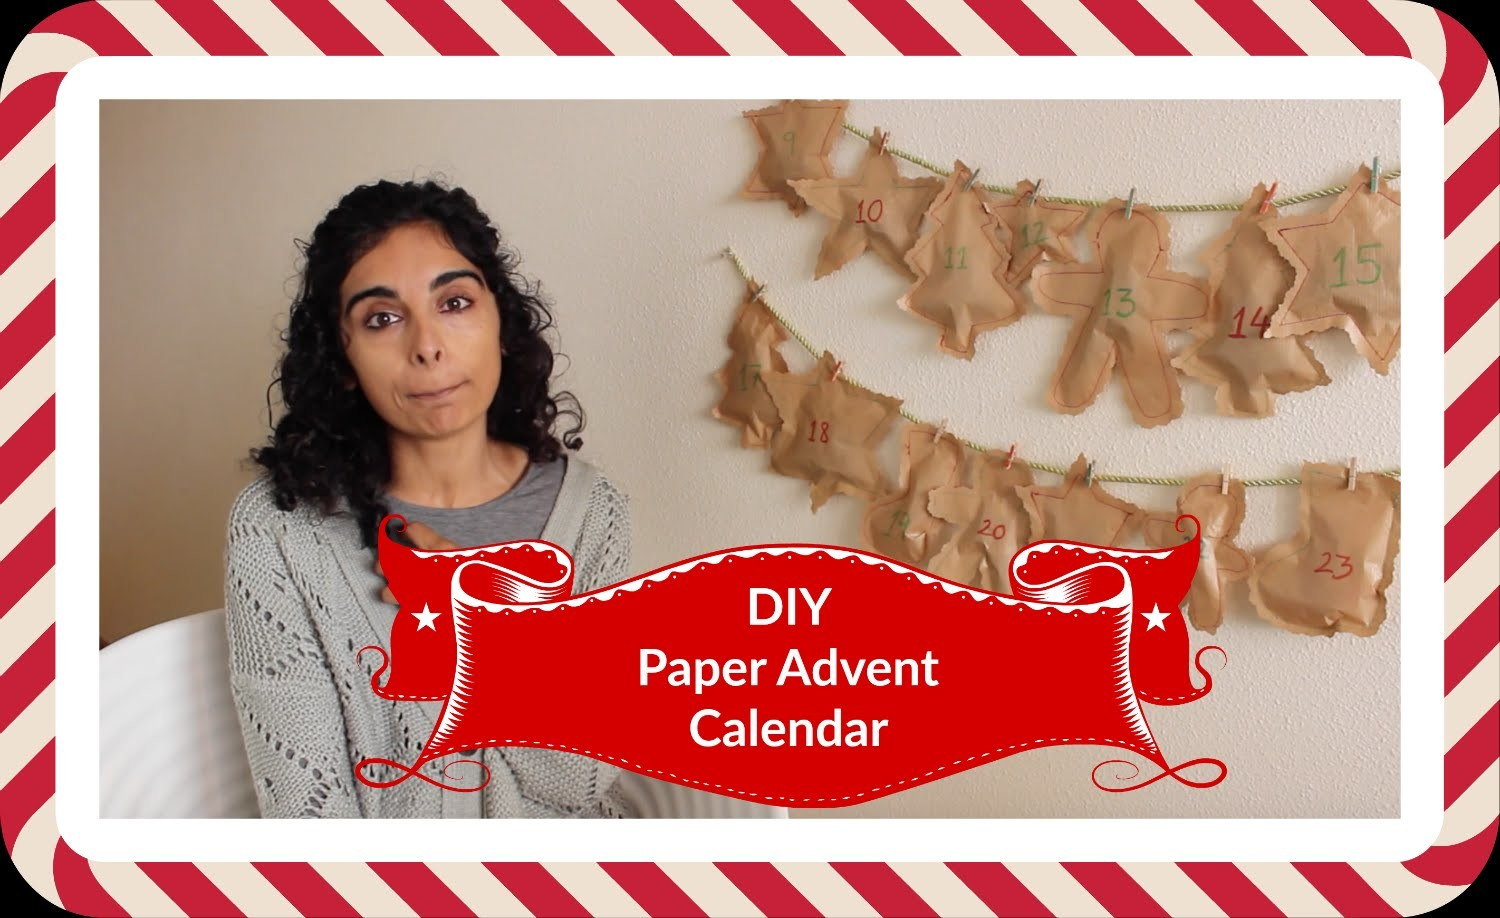 DIY - Calendario Adviento de papel | Manneken